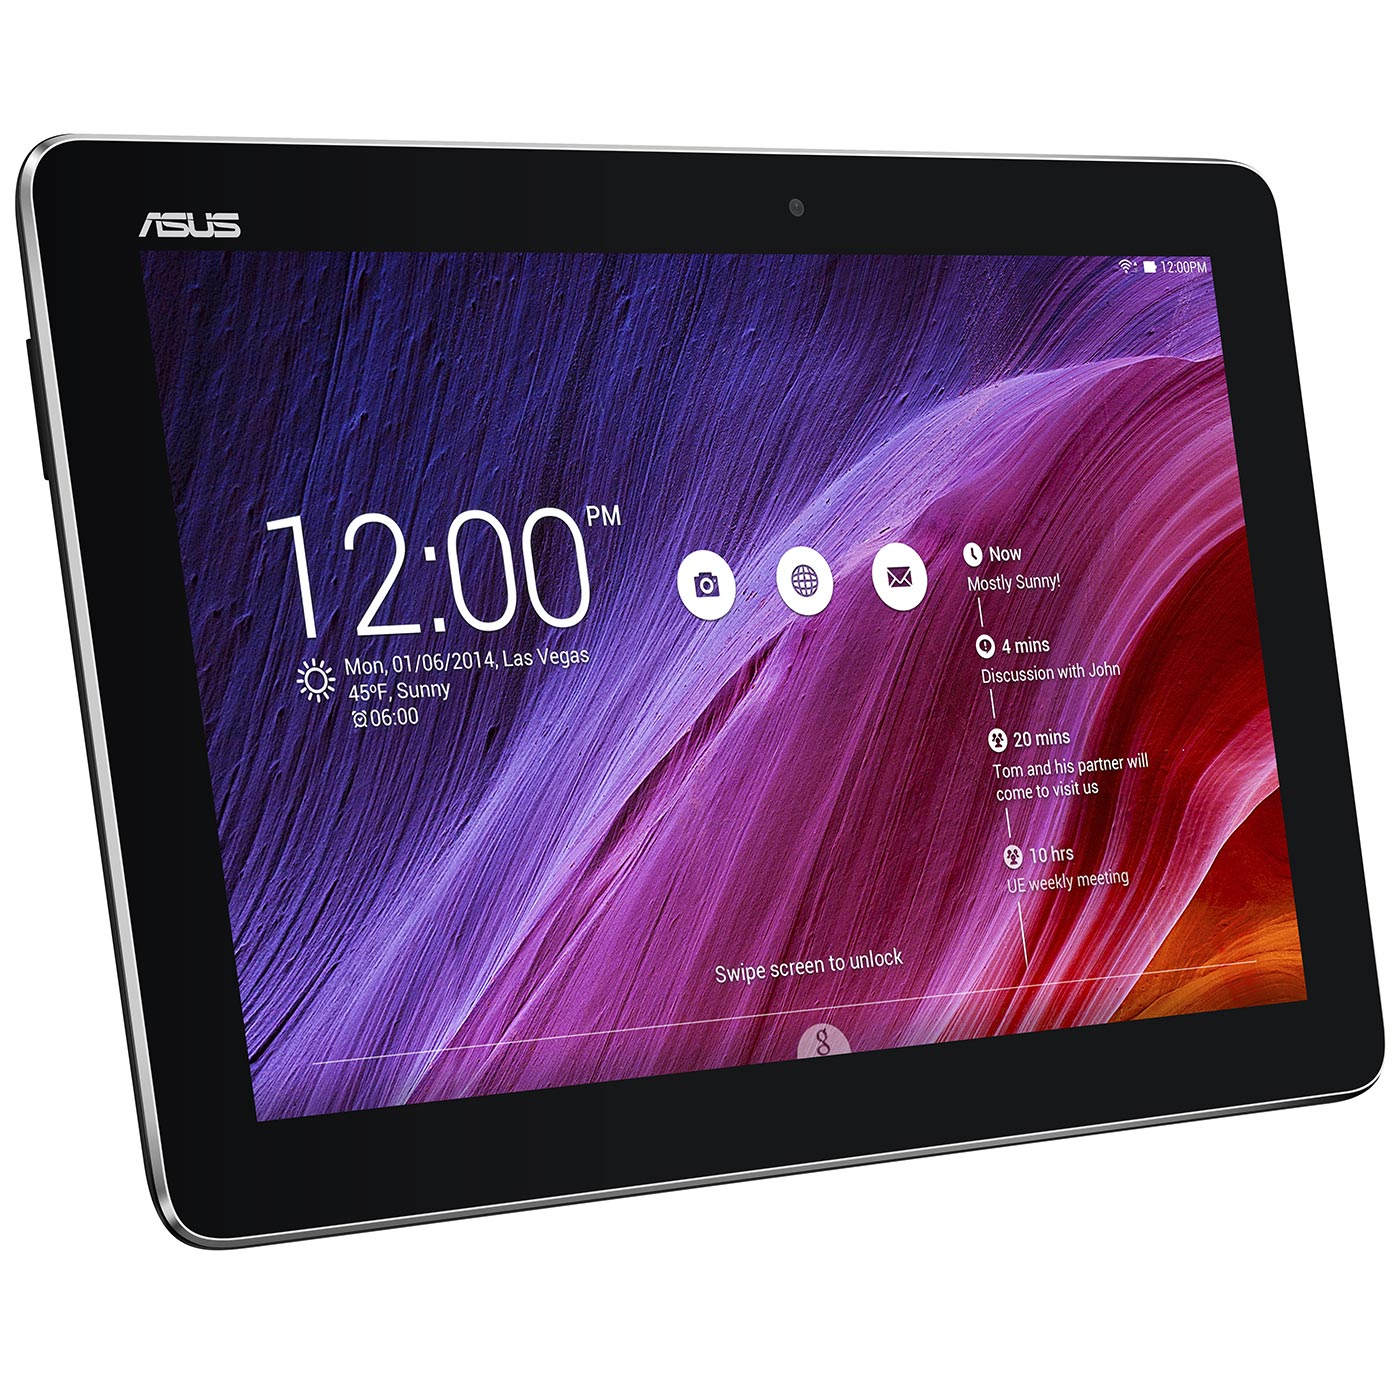 asus memo pad 10 me103k 6a004a noir 90nk01e3 m00450 achat vente tablette tactile sur. Black Bedroom Furniture Sets. Home Design Ideas